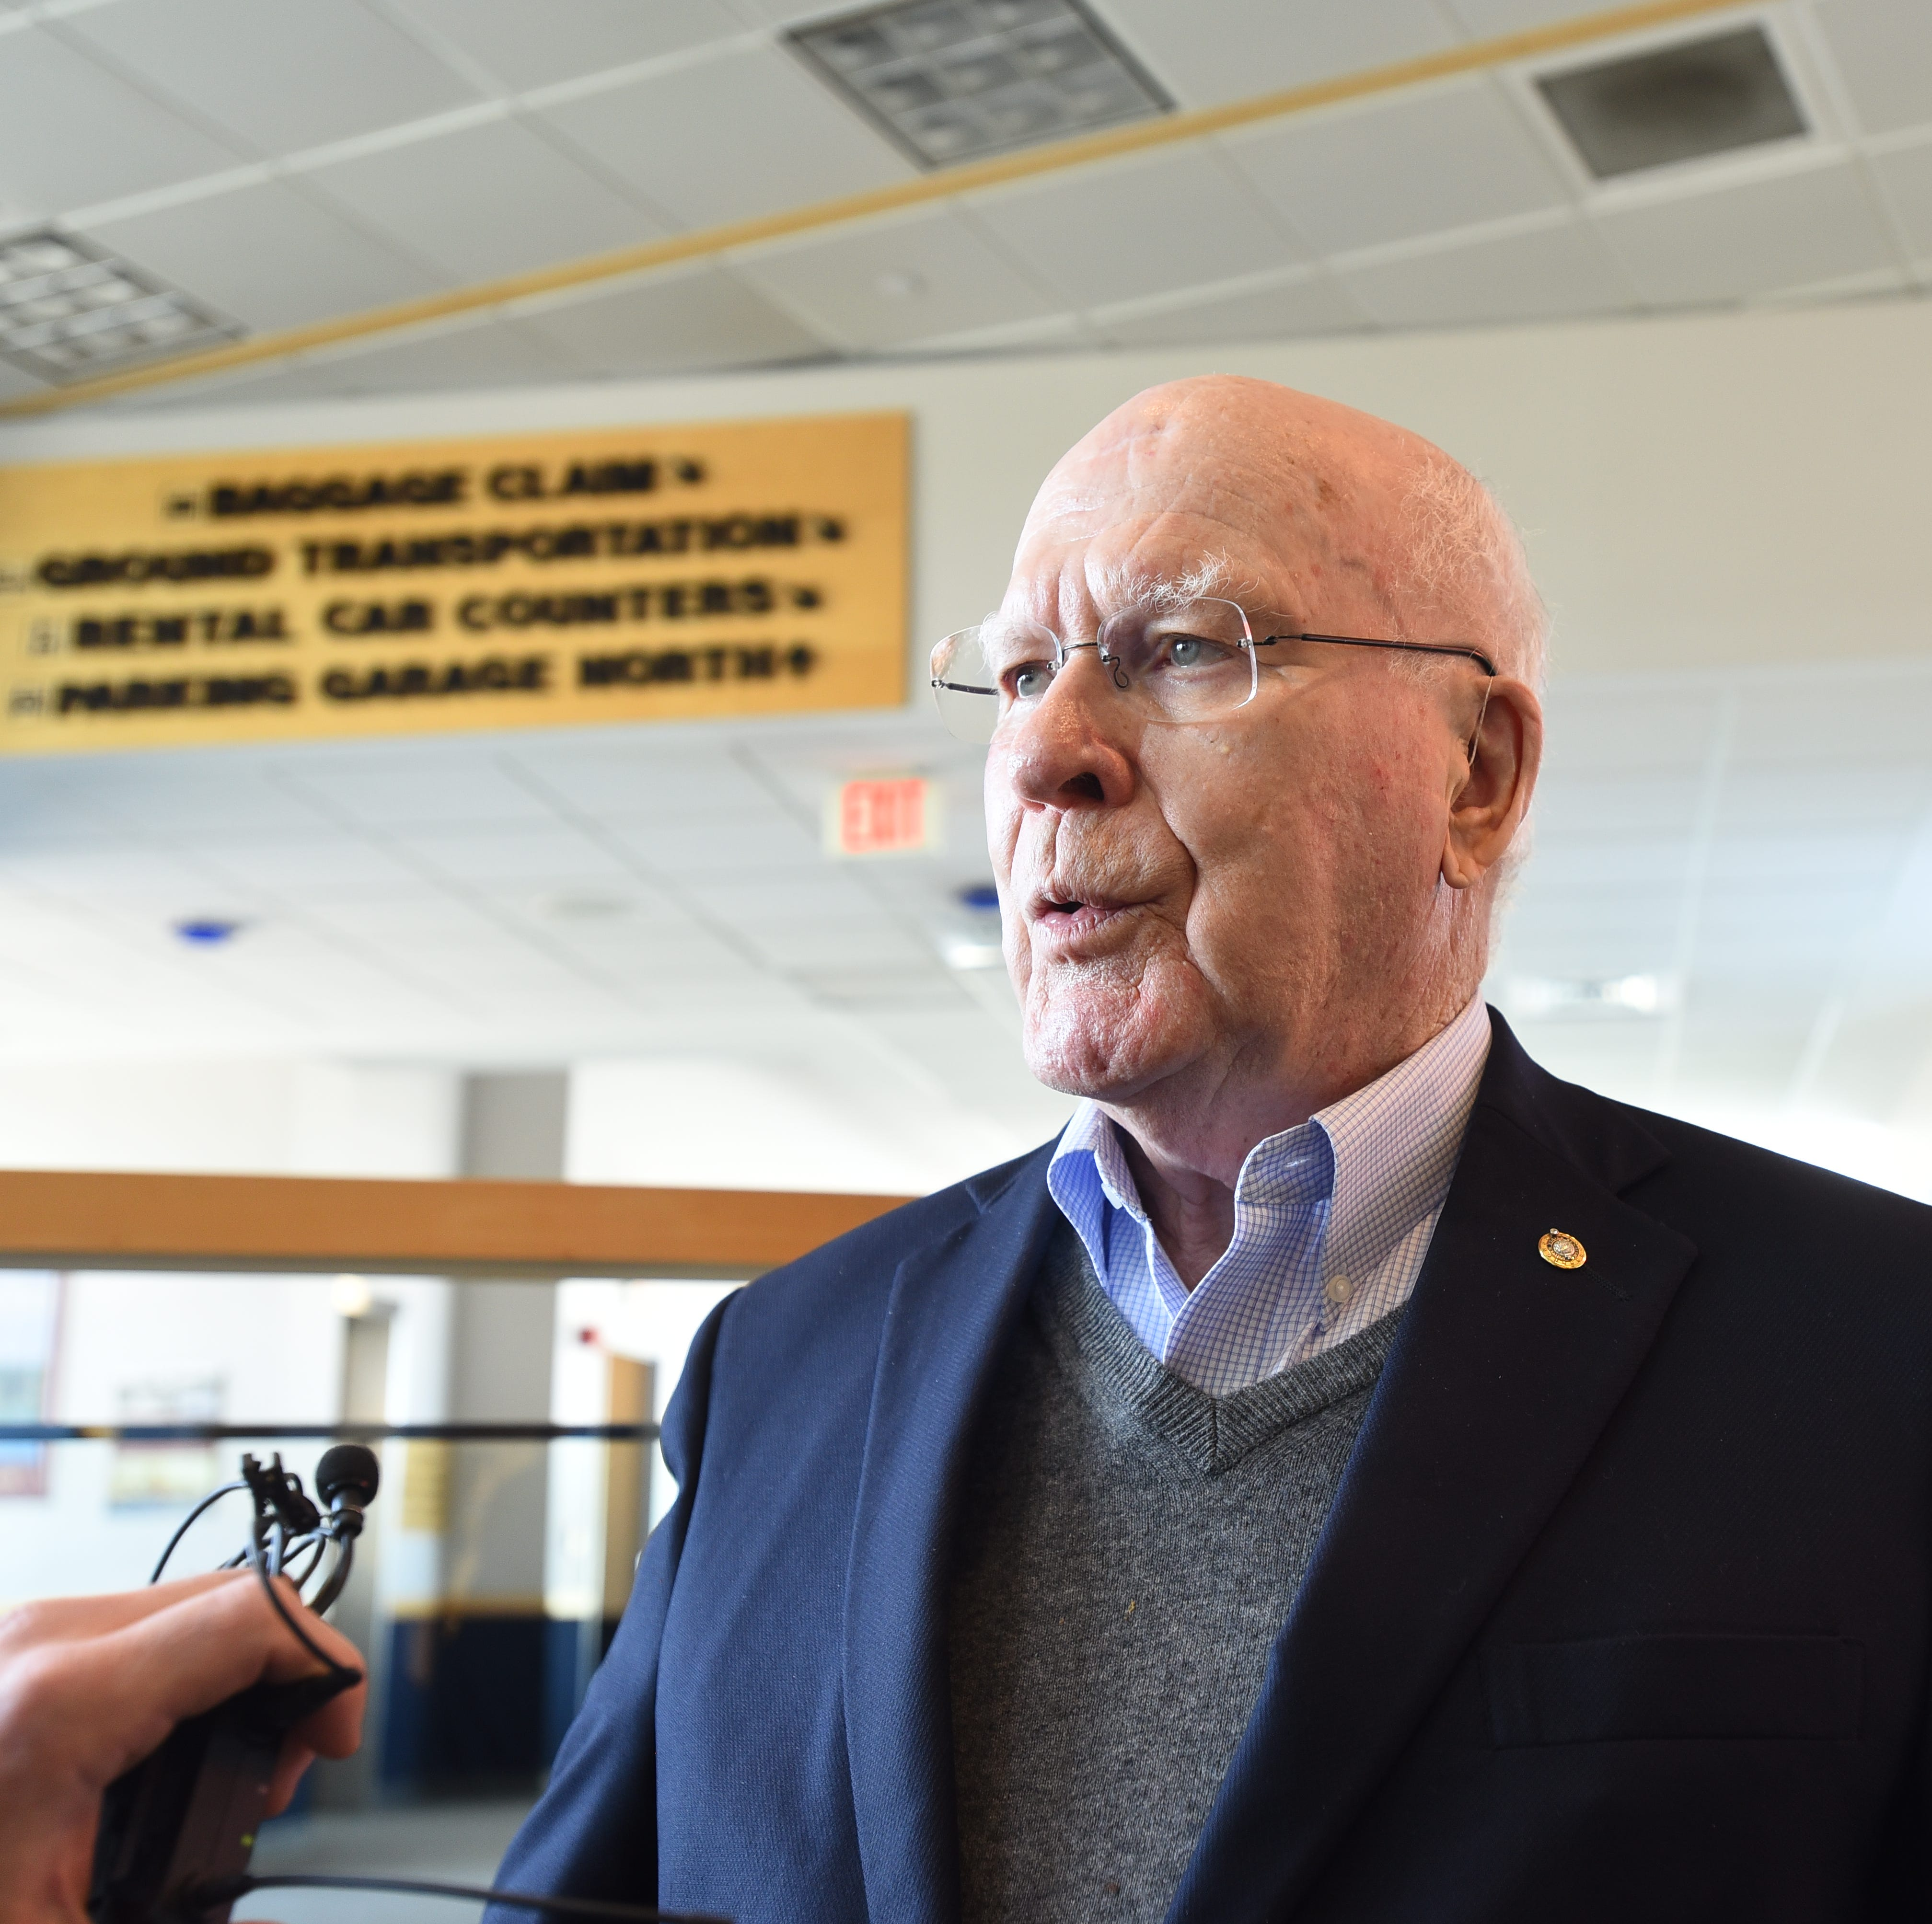 Sen. Patrick Leahy says he will be briefed on Mueller report Sunday